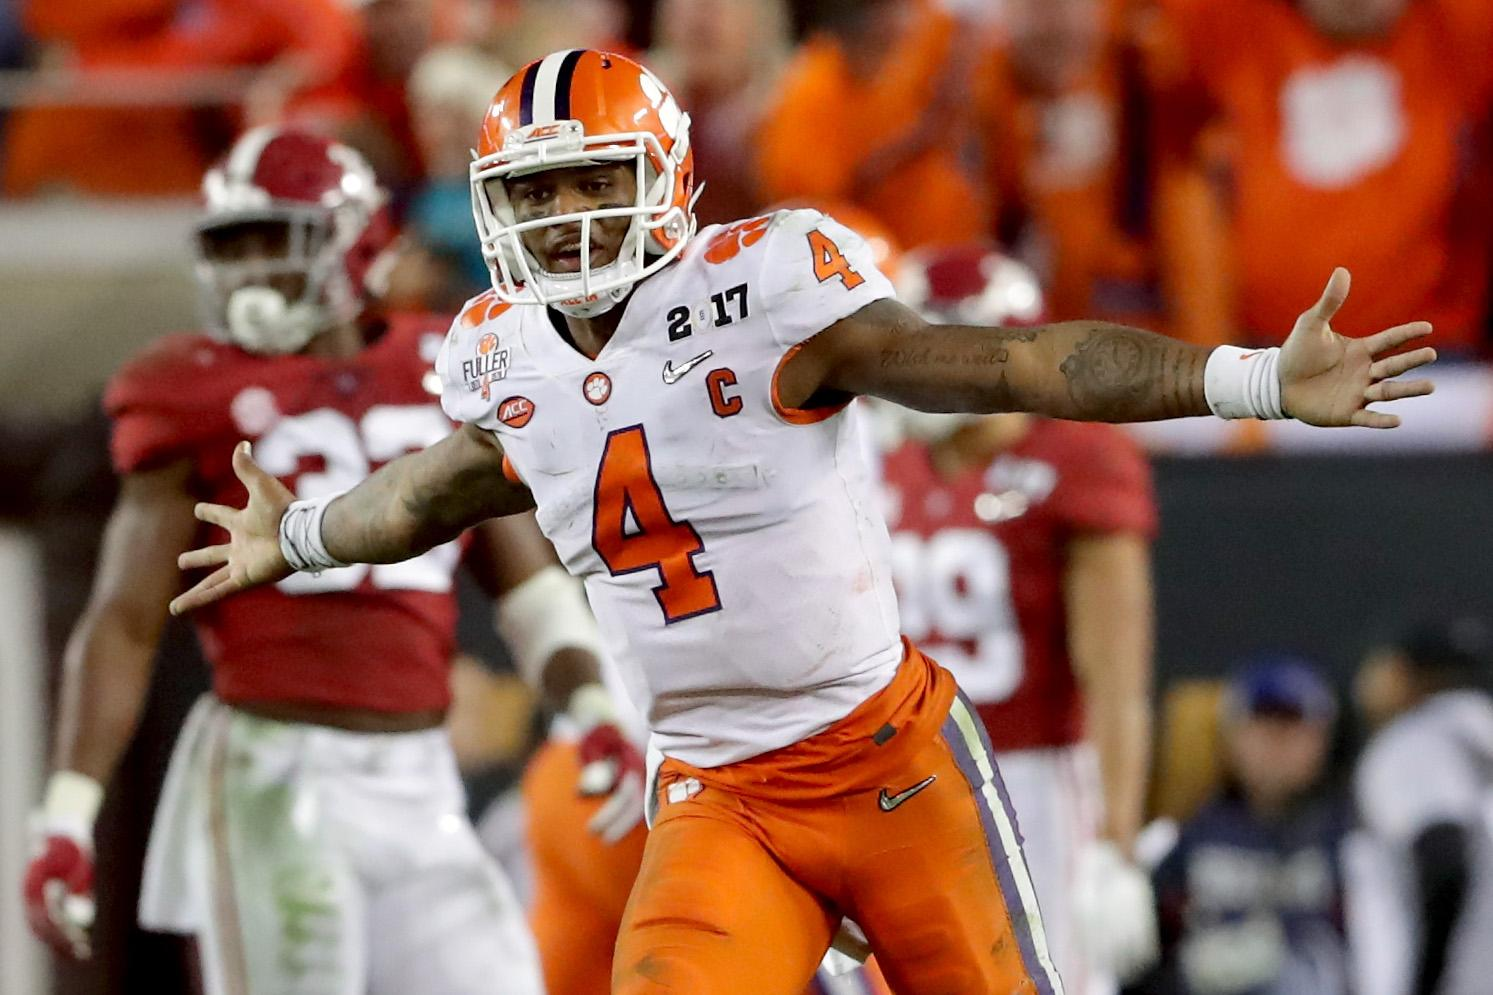 Did Deshaun Watson boost NFL draft stock with memorable game vs. Alabama?